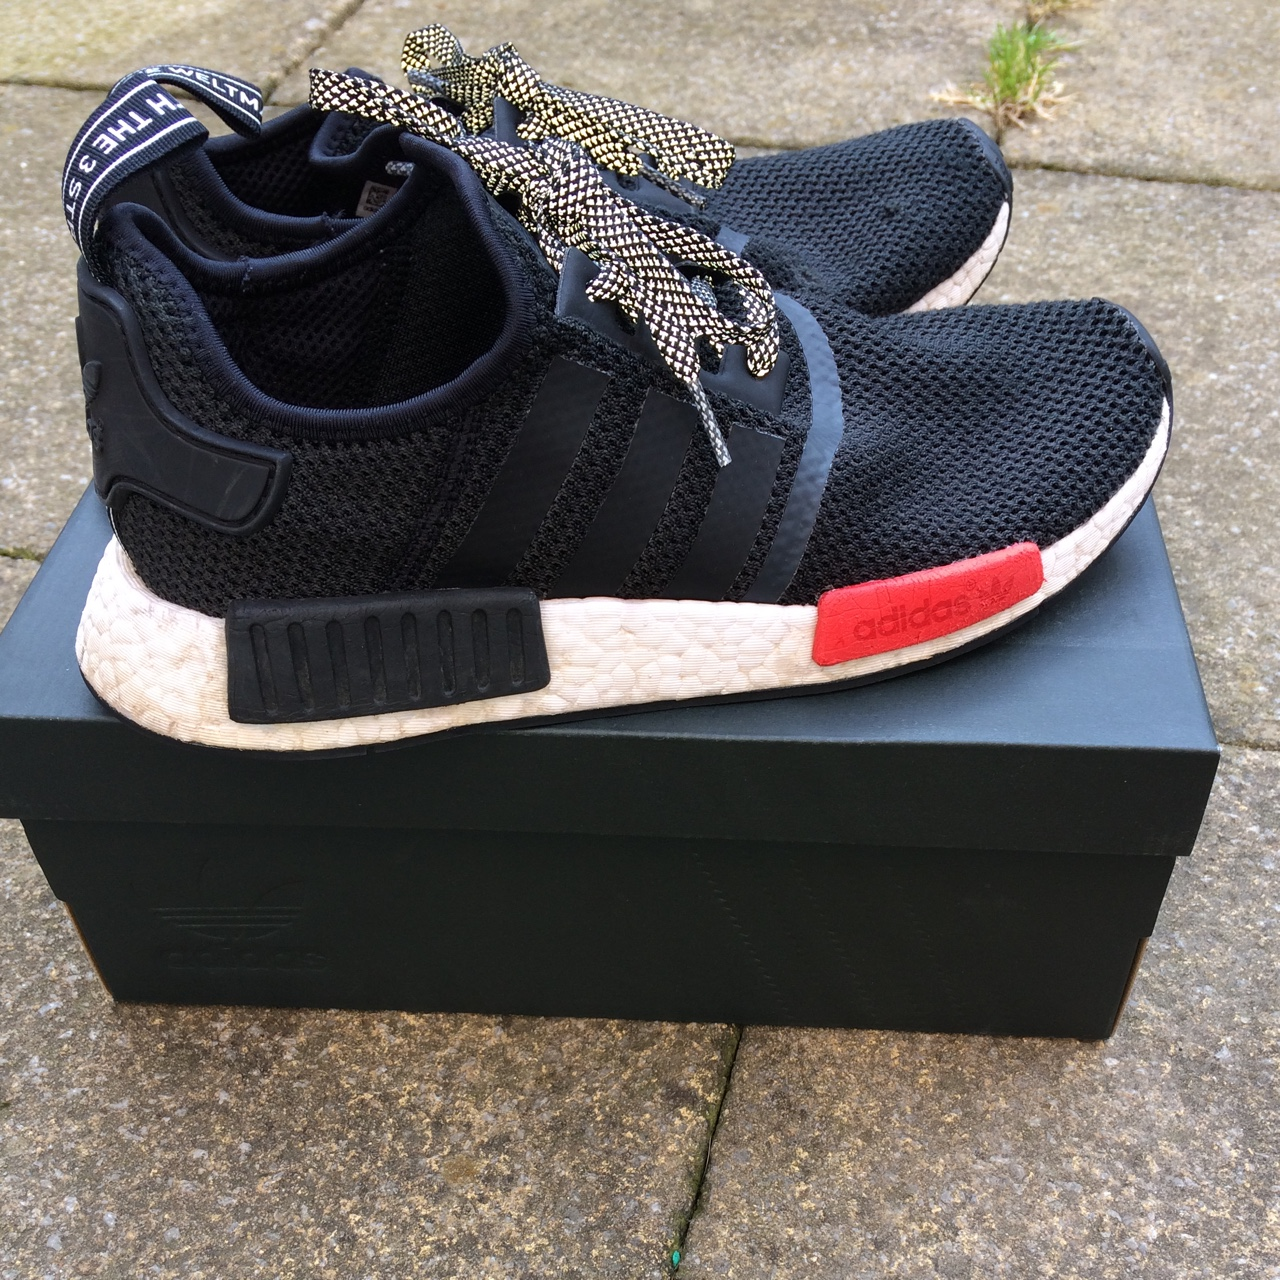 Footlocker Adidas NMD R1, sold out, used but now too